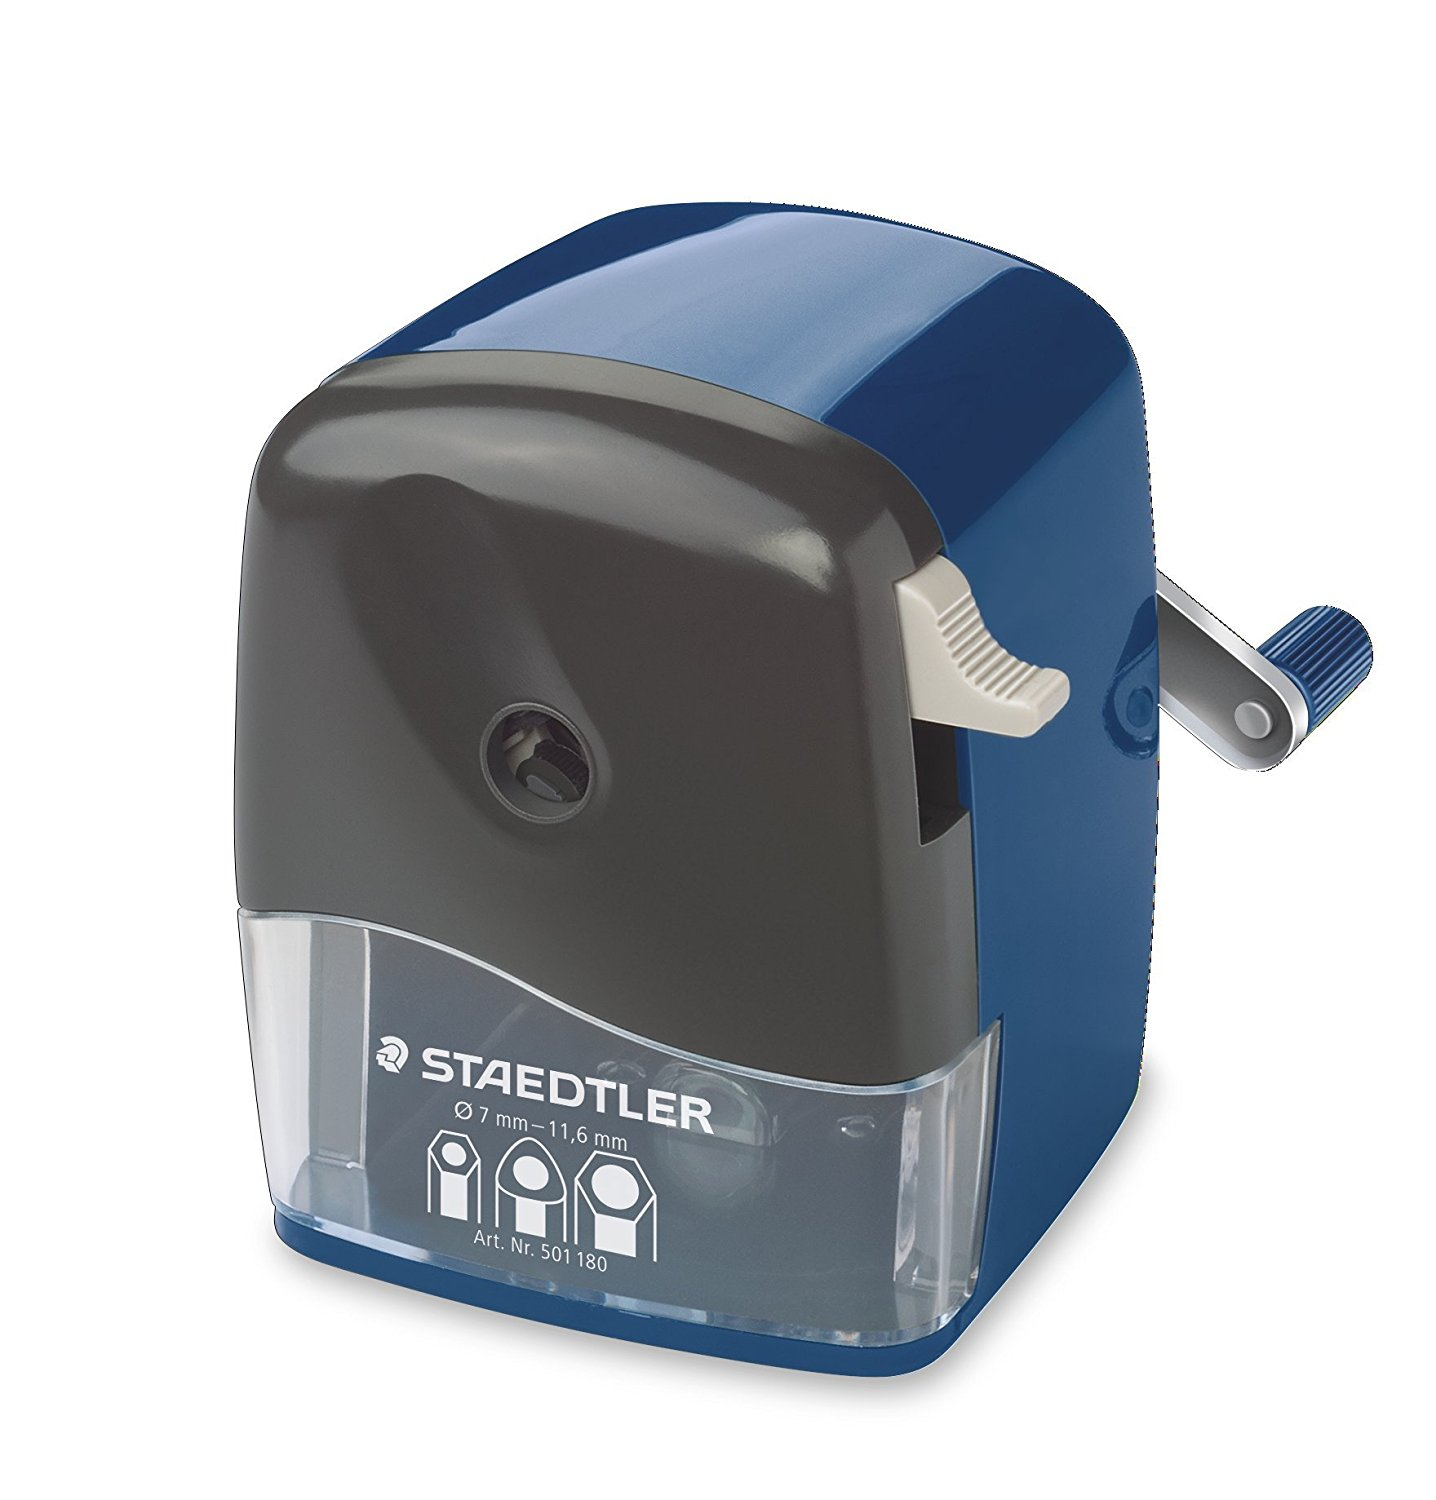 Staedtler - Mars Rotary Sharpener, Desk Clamp (501 180)